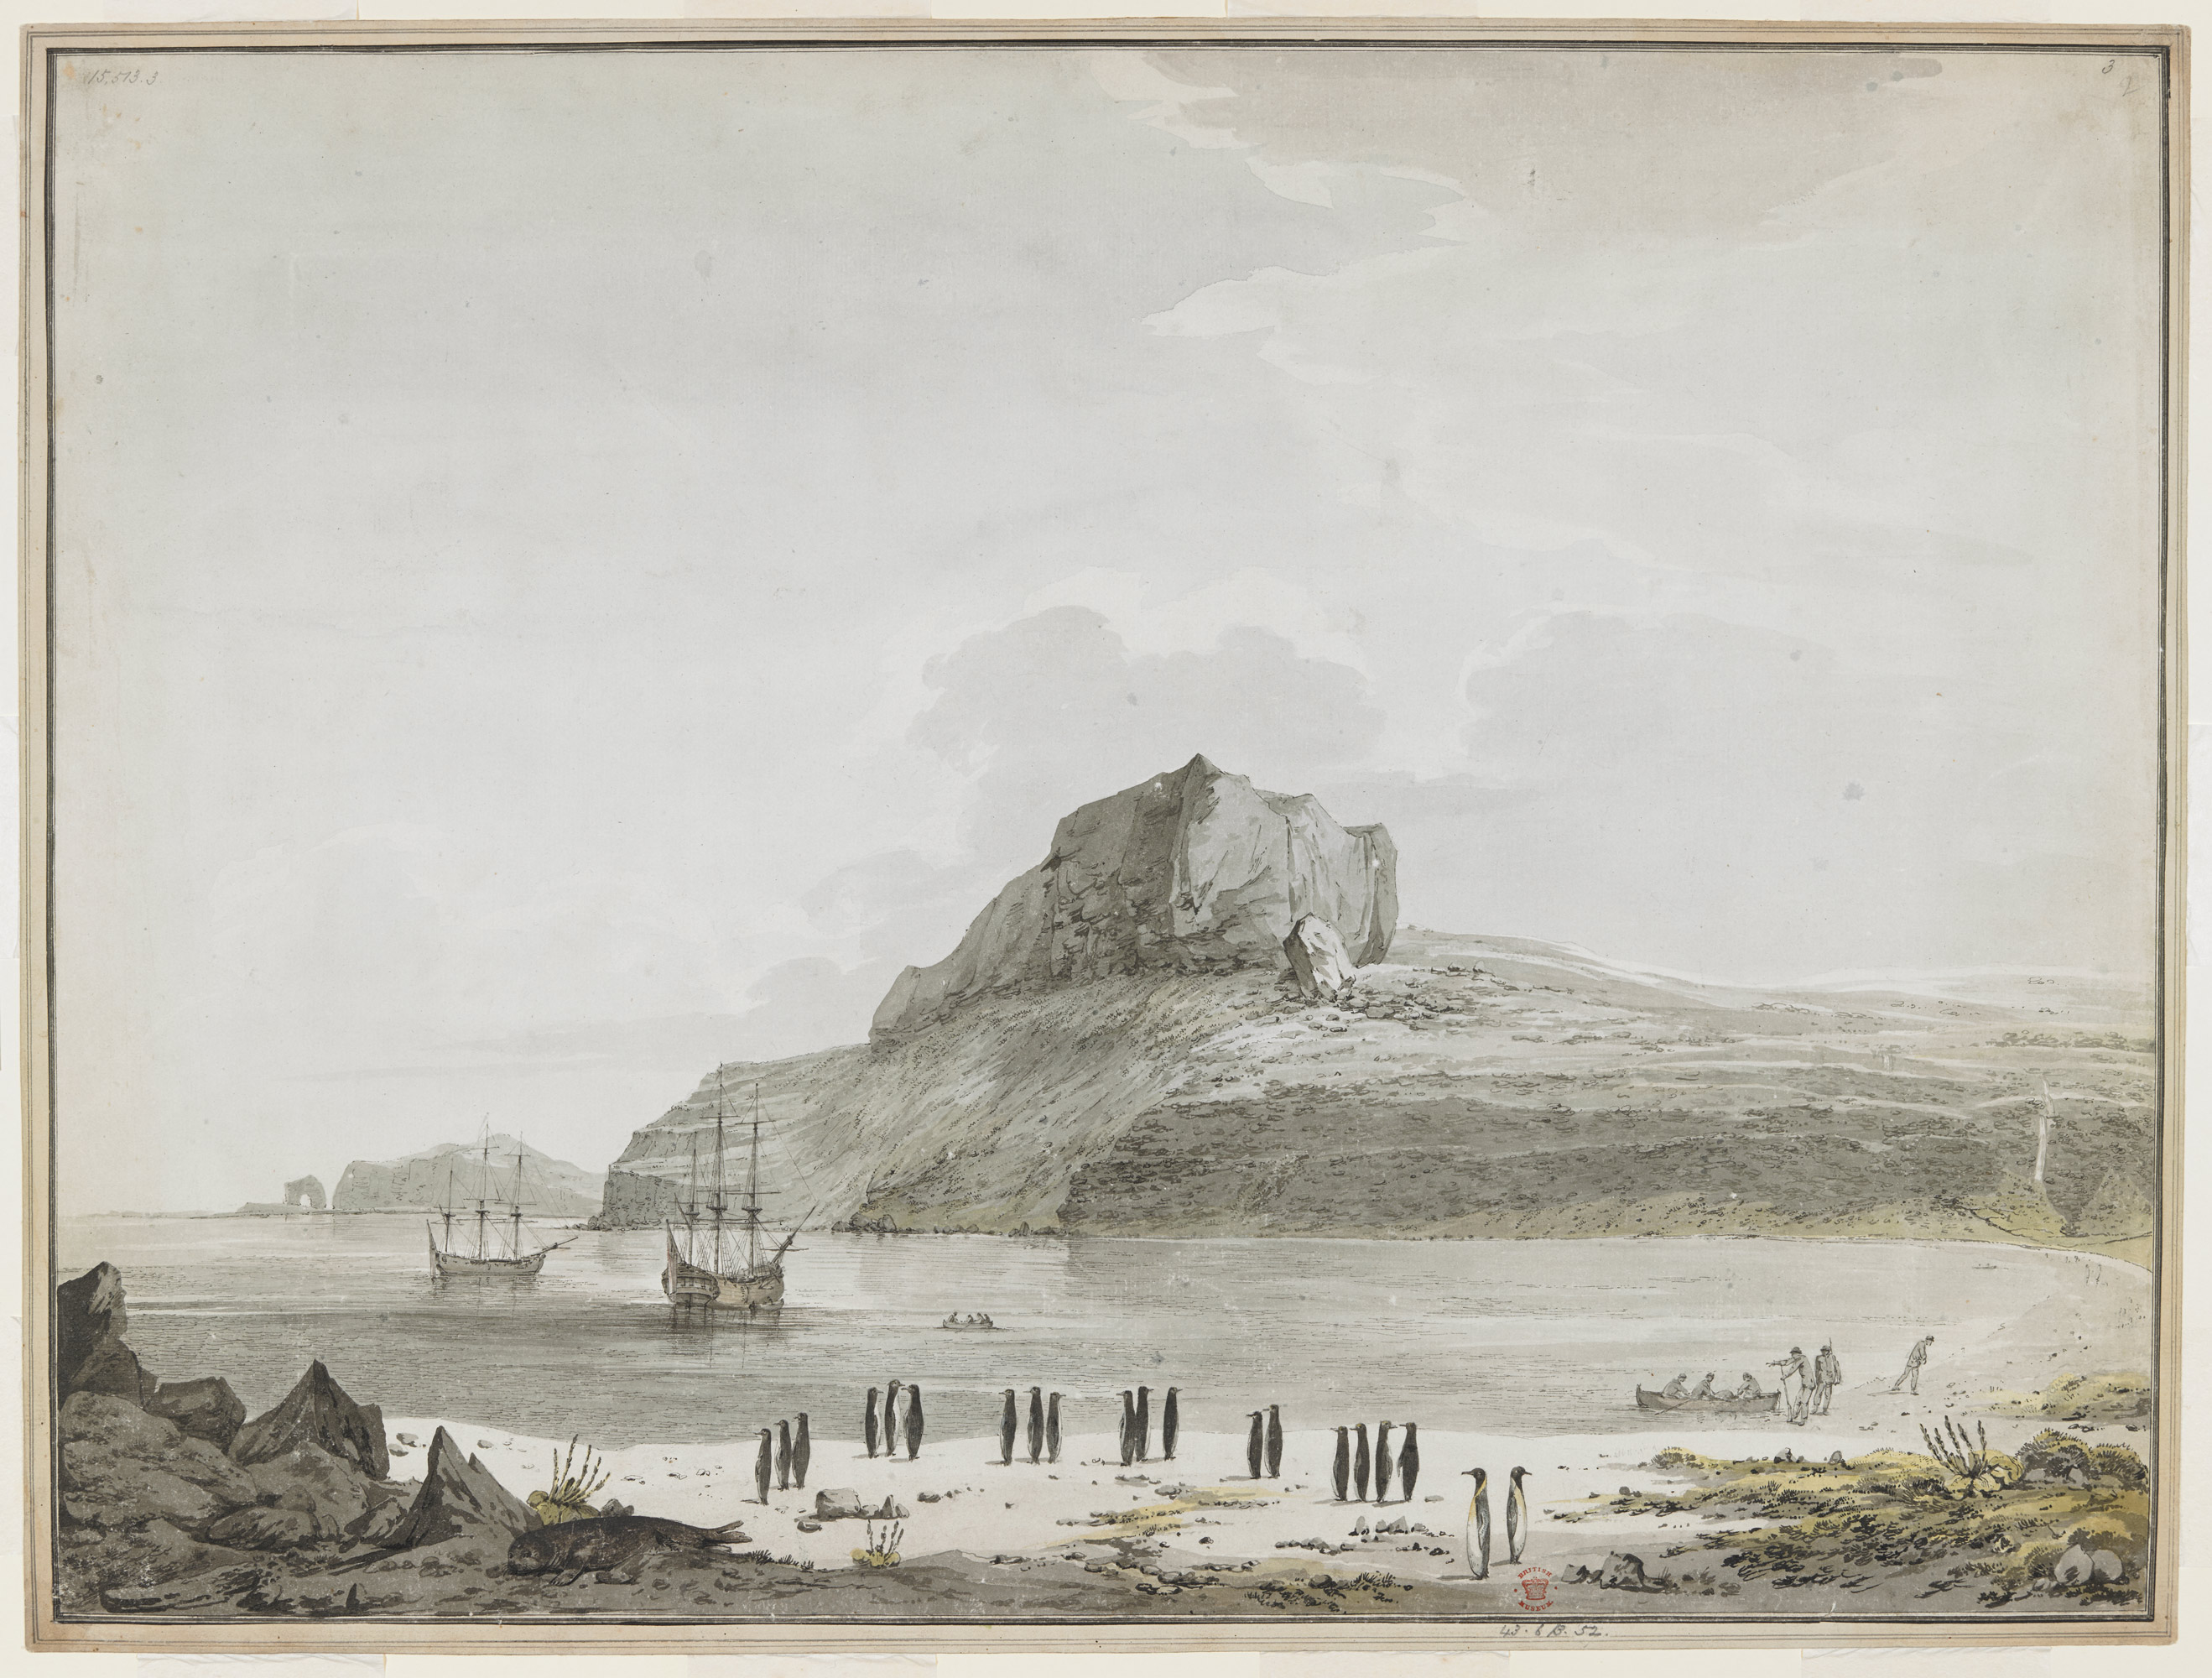 Christmas Harbour, Kerguelen Island, Captain Cook's third voyage